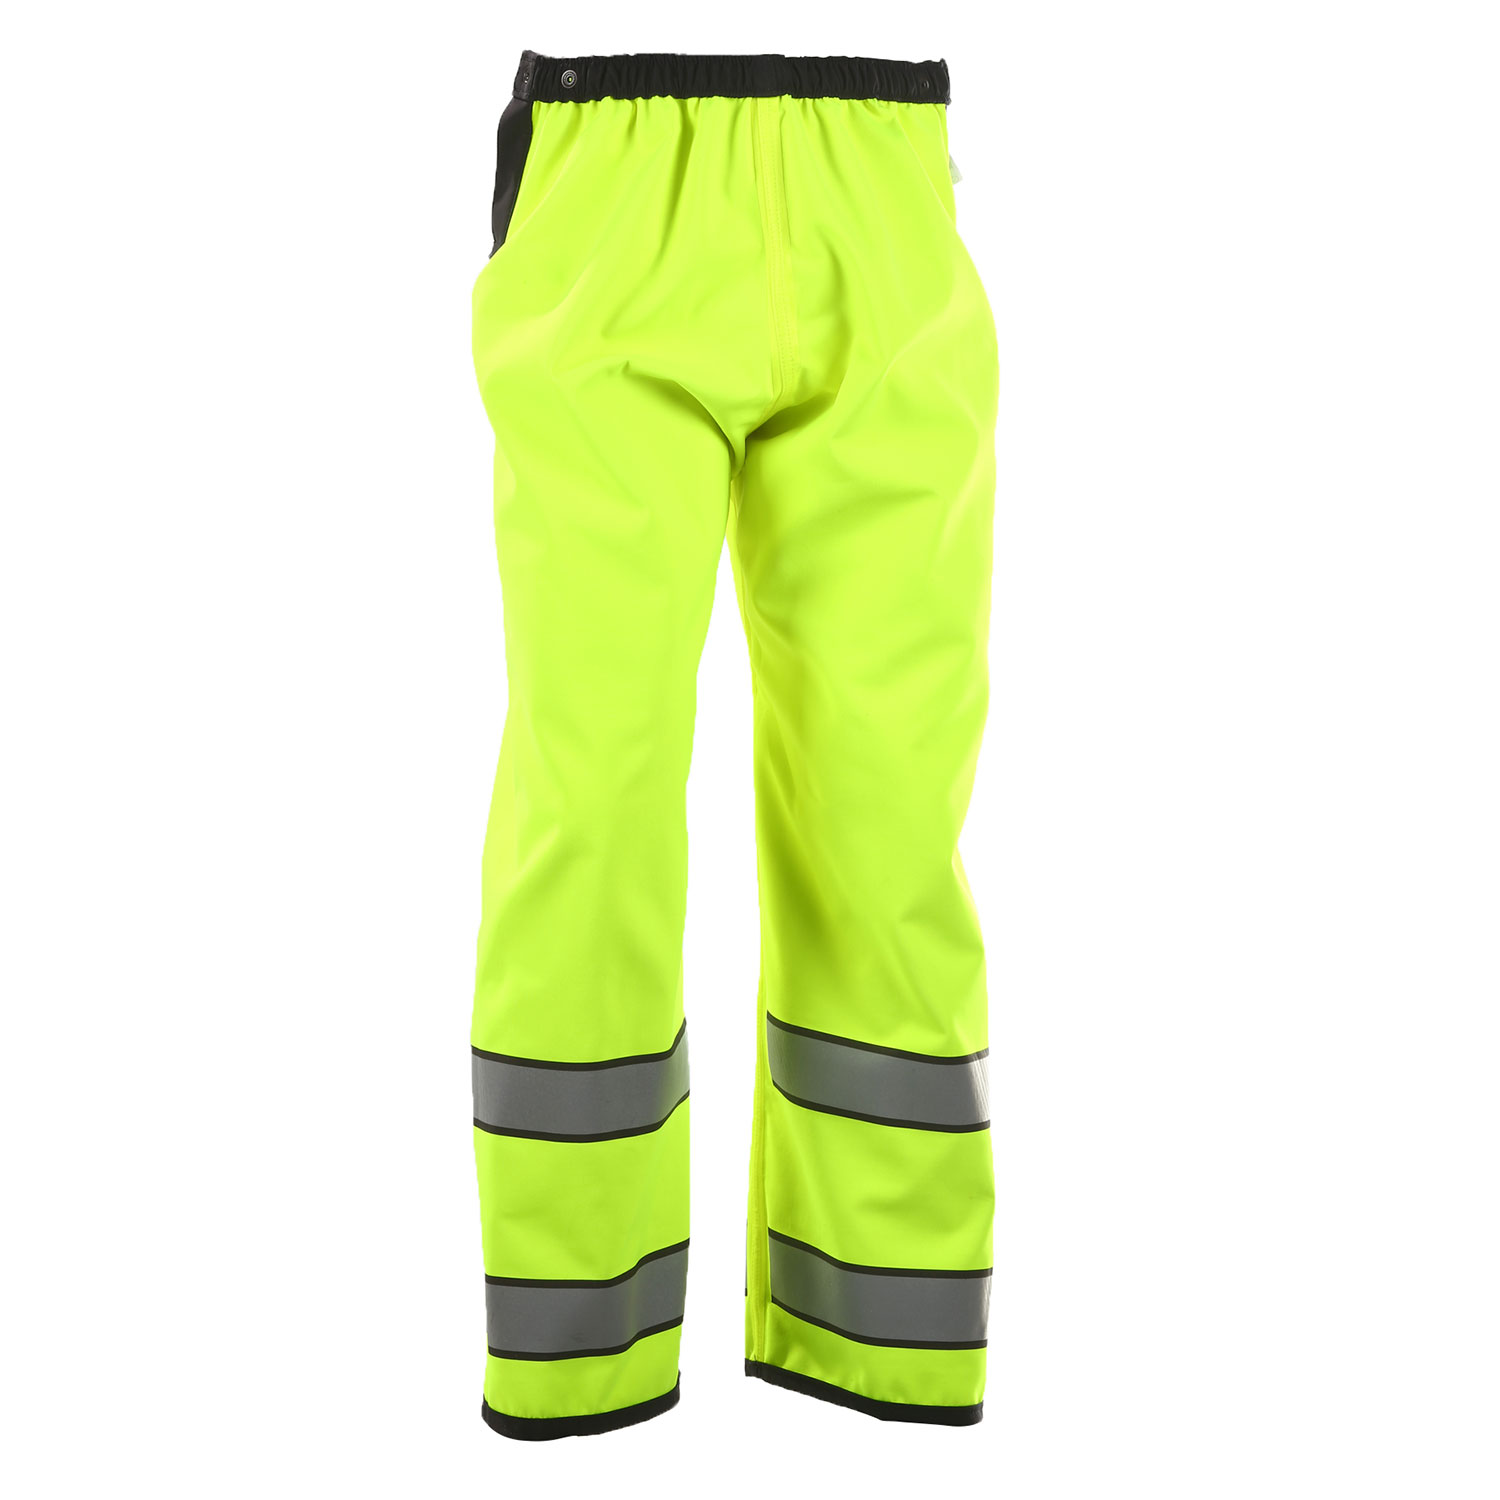 Neese Reversible Weatherproof Pants